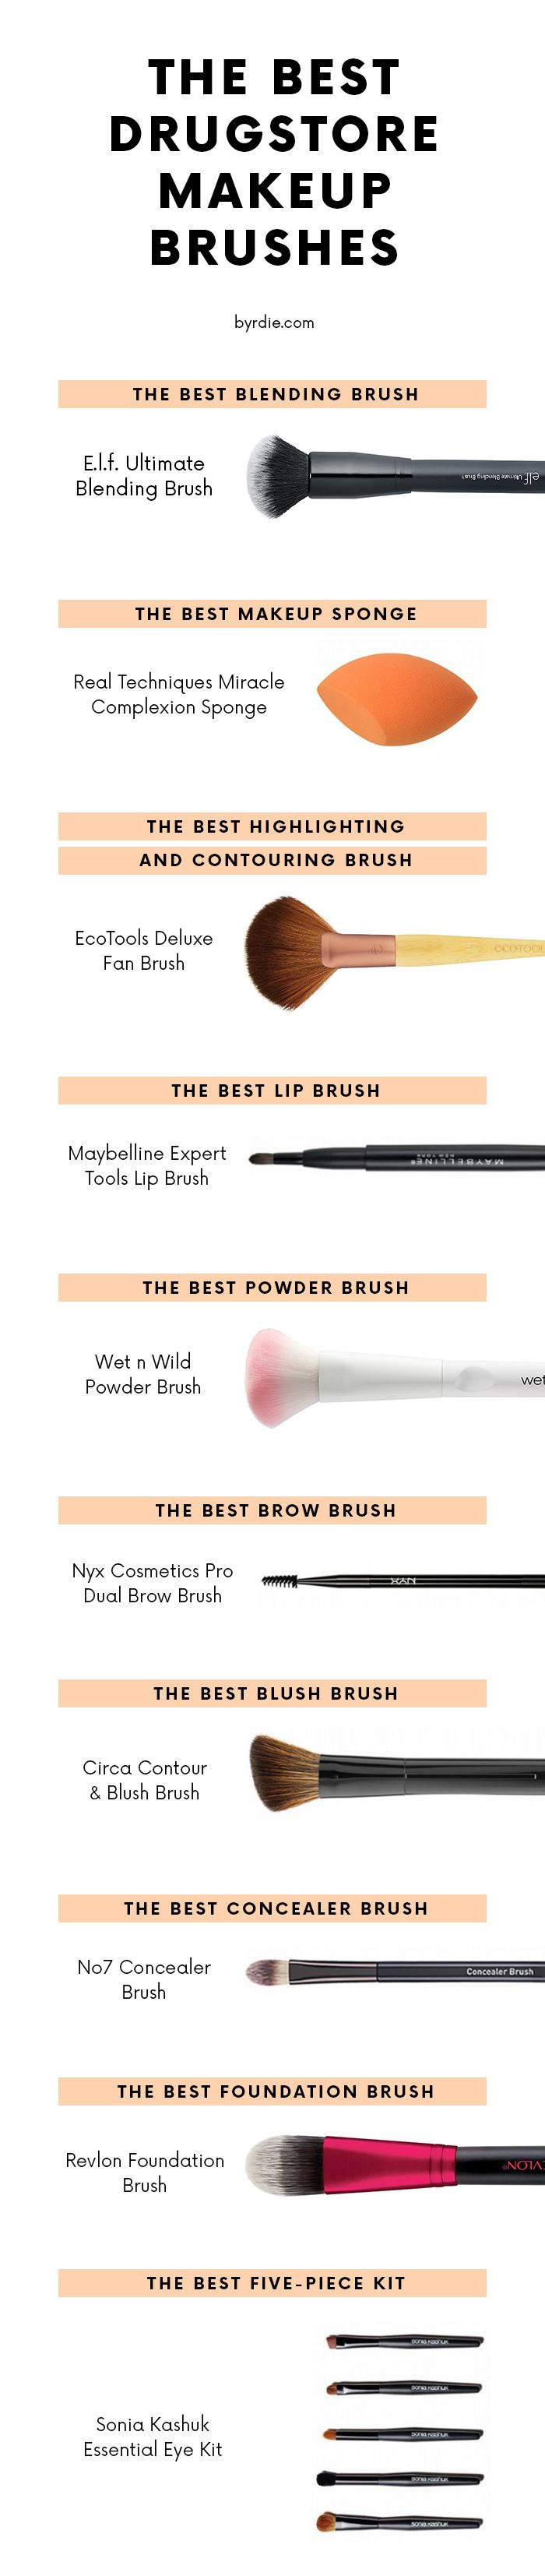 The 12 Drugstore Makeup Brushes That Will Never Let You Down Best Drugstore Makeup Best Makeup Products Drugstore Makeup